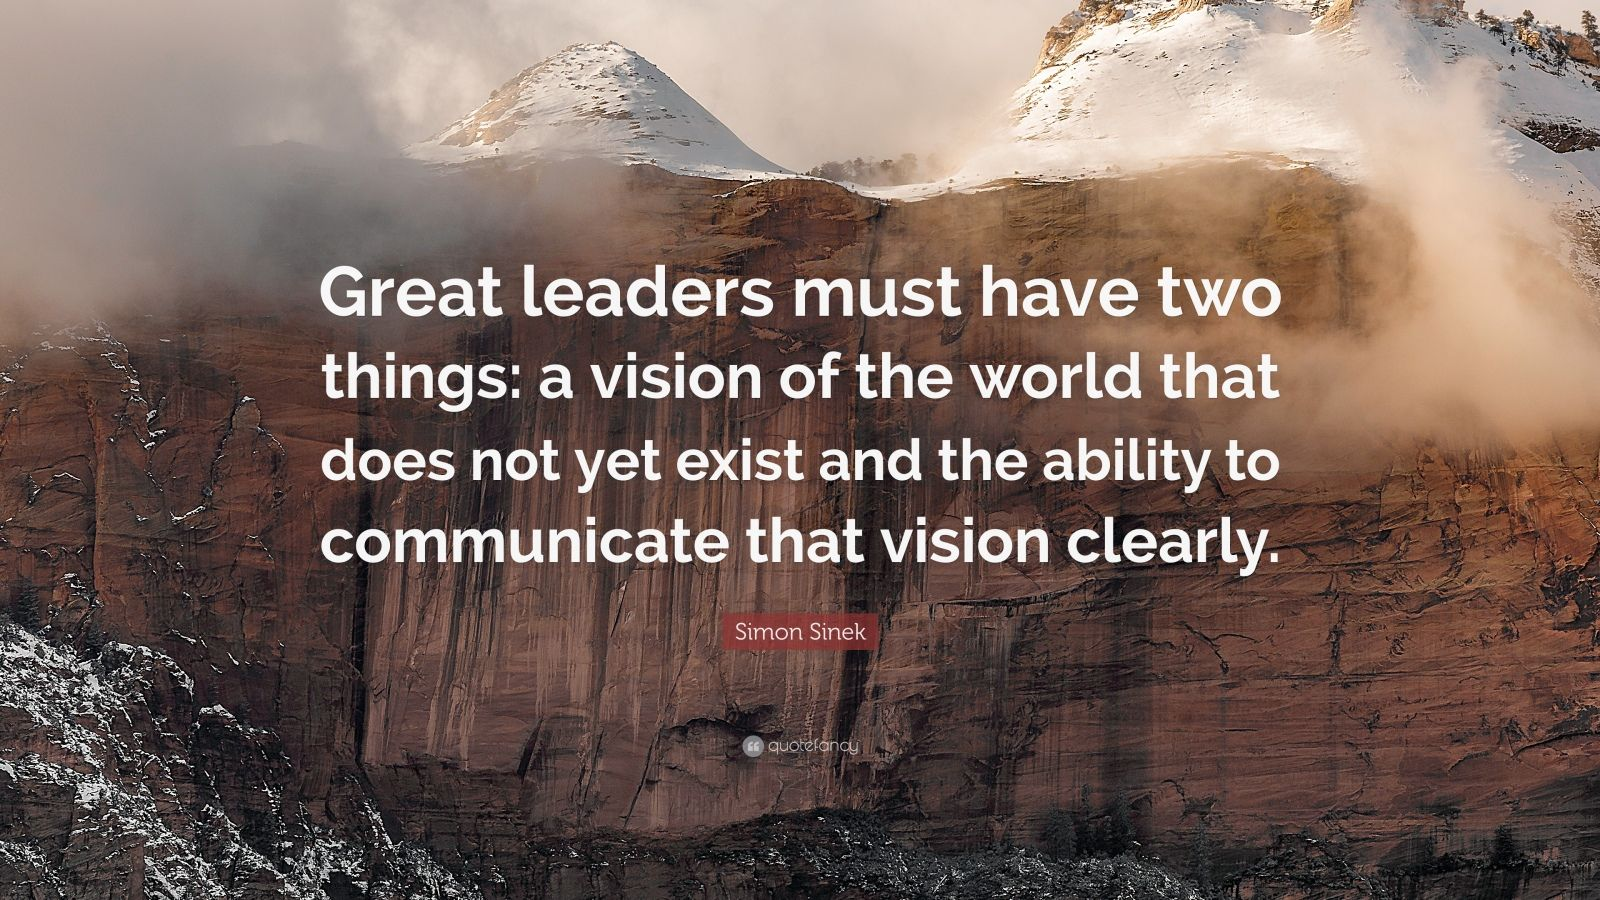 """Simon Sinek Quote: """"Great leaders must have two things: a vision of the world that does not yet exist and the ability to communicate that vision clearly."""""""